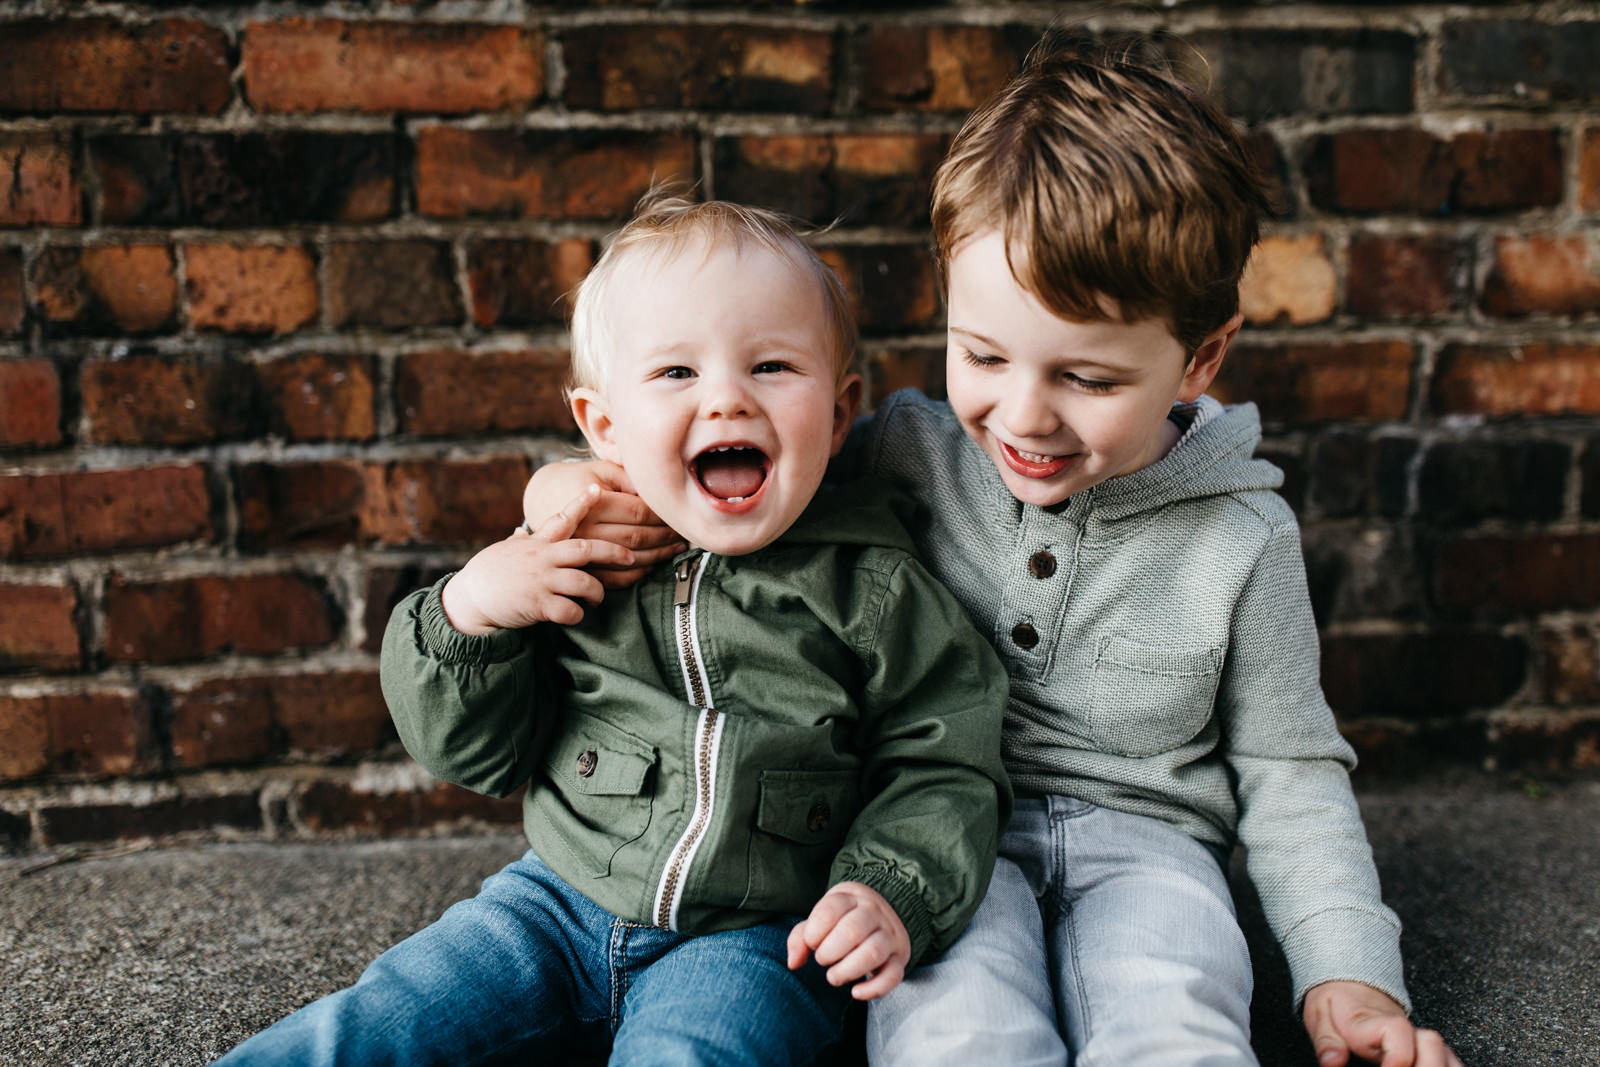 Two little boys laughing - Photographing shy kids